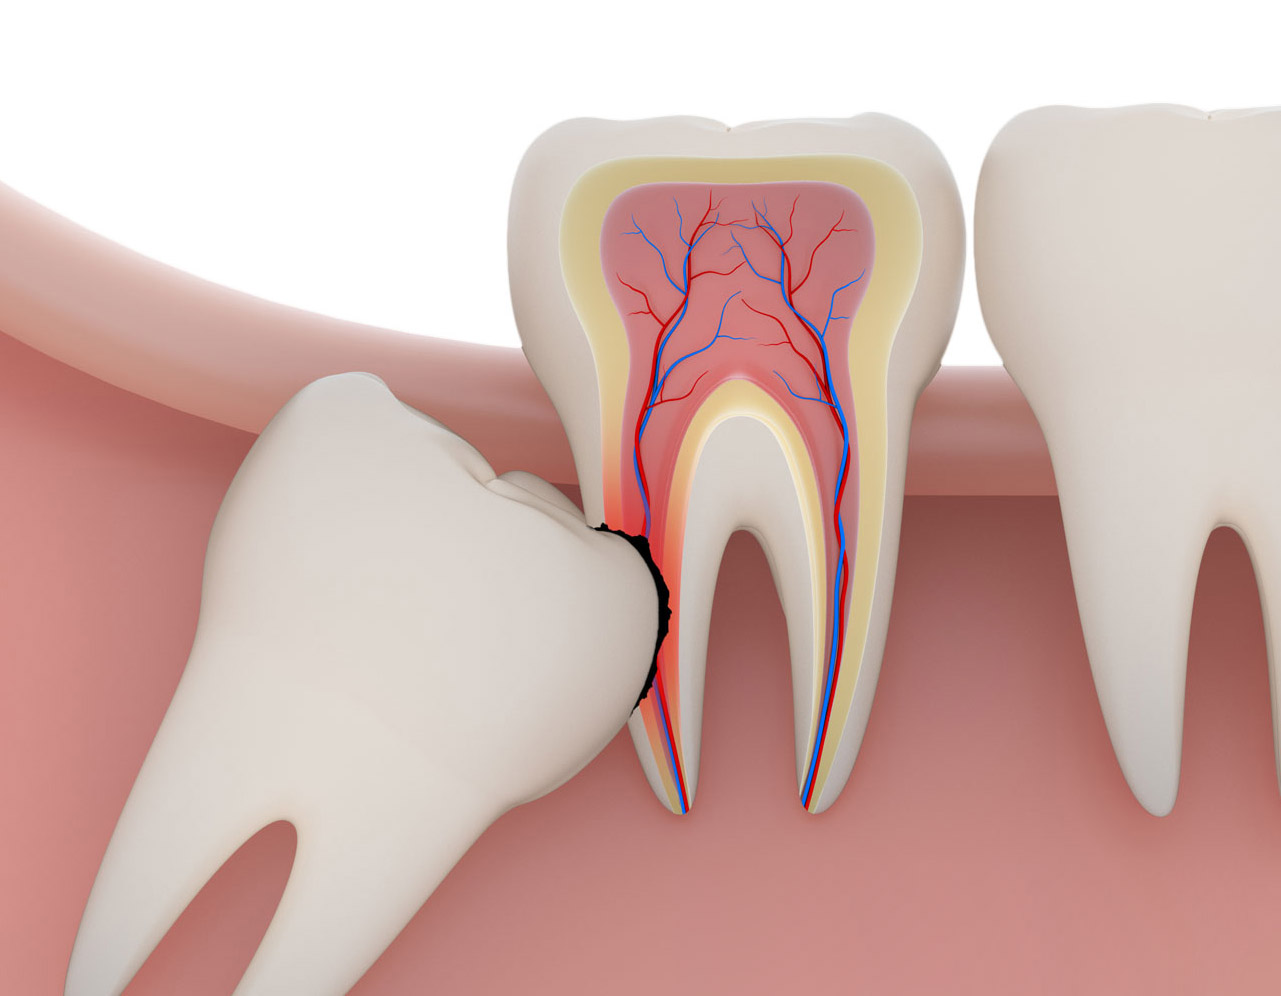 Wisdom Teeth Removal What You Need To Know Before You Go